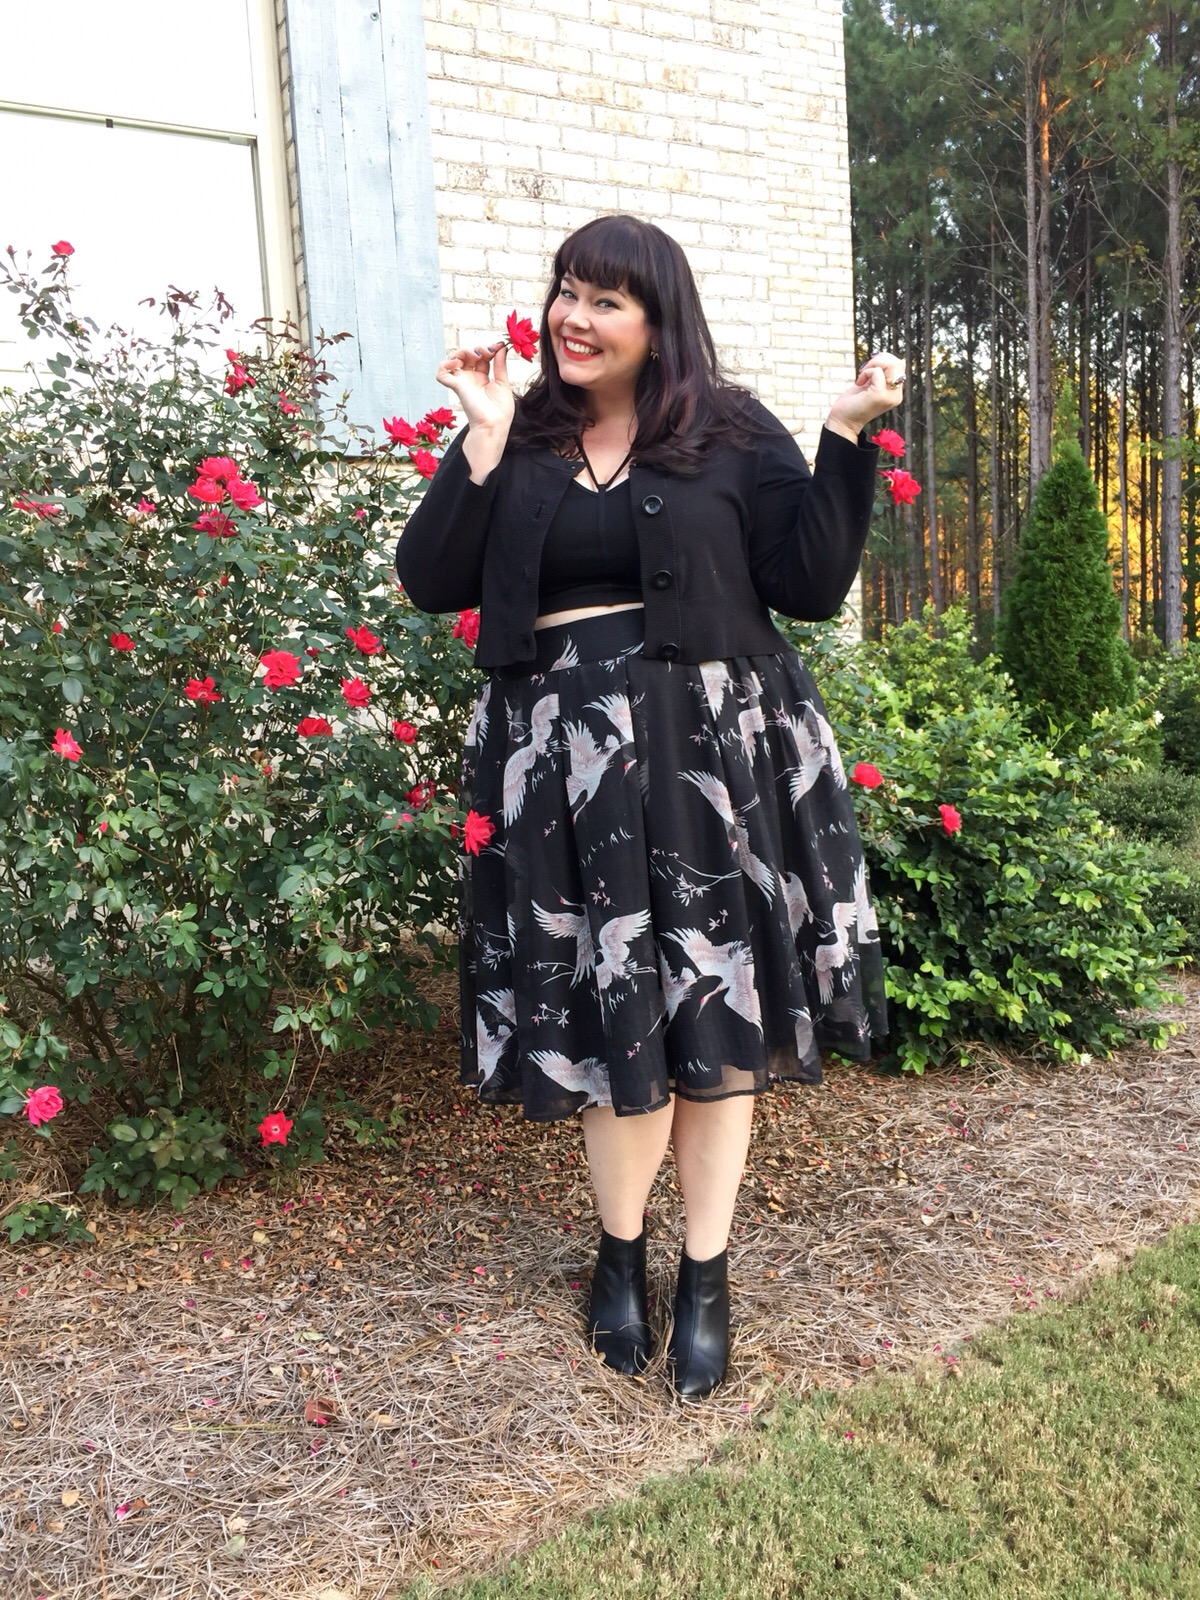 Gwynnie Bee, Society Plus, plus size clothing haul, Plus Size Style, Plus Size Fashion, Style Plus Curves, Chicago Blogger, Chicago Plus Size Blogger, Plus Size Blogger, Amber McCulloch